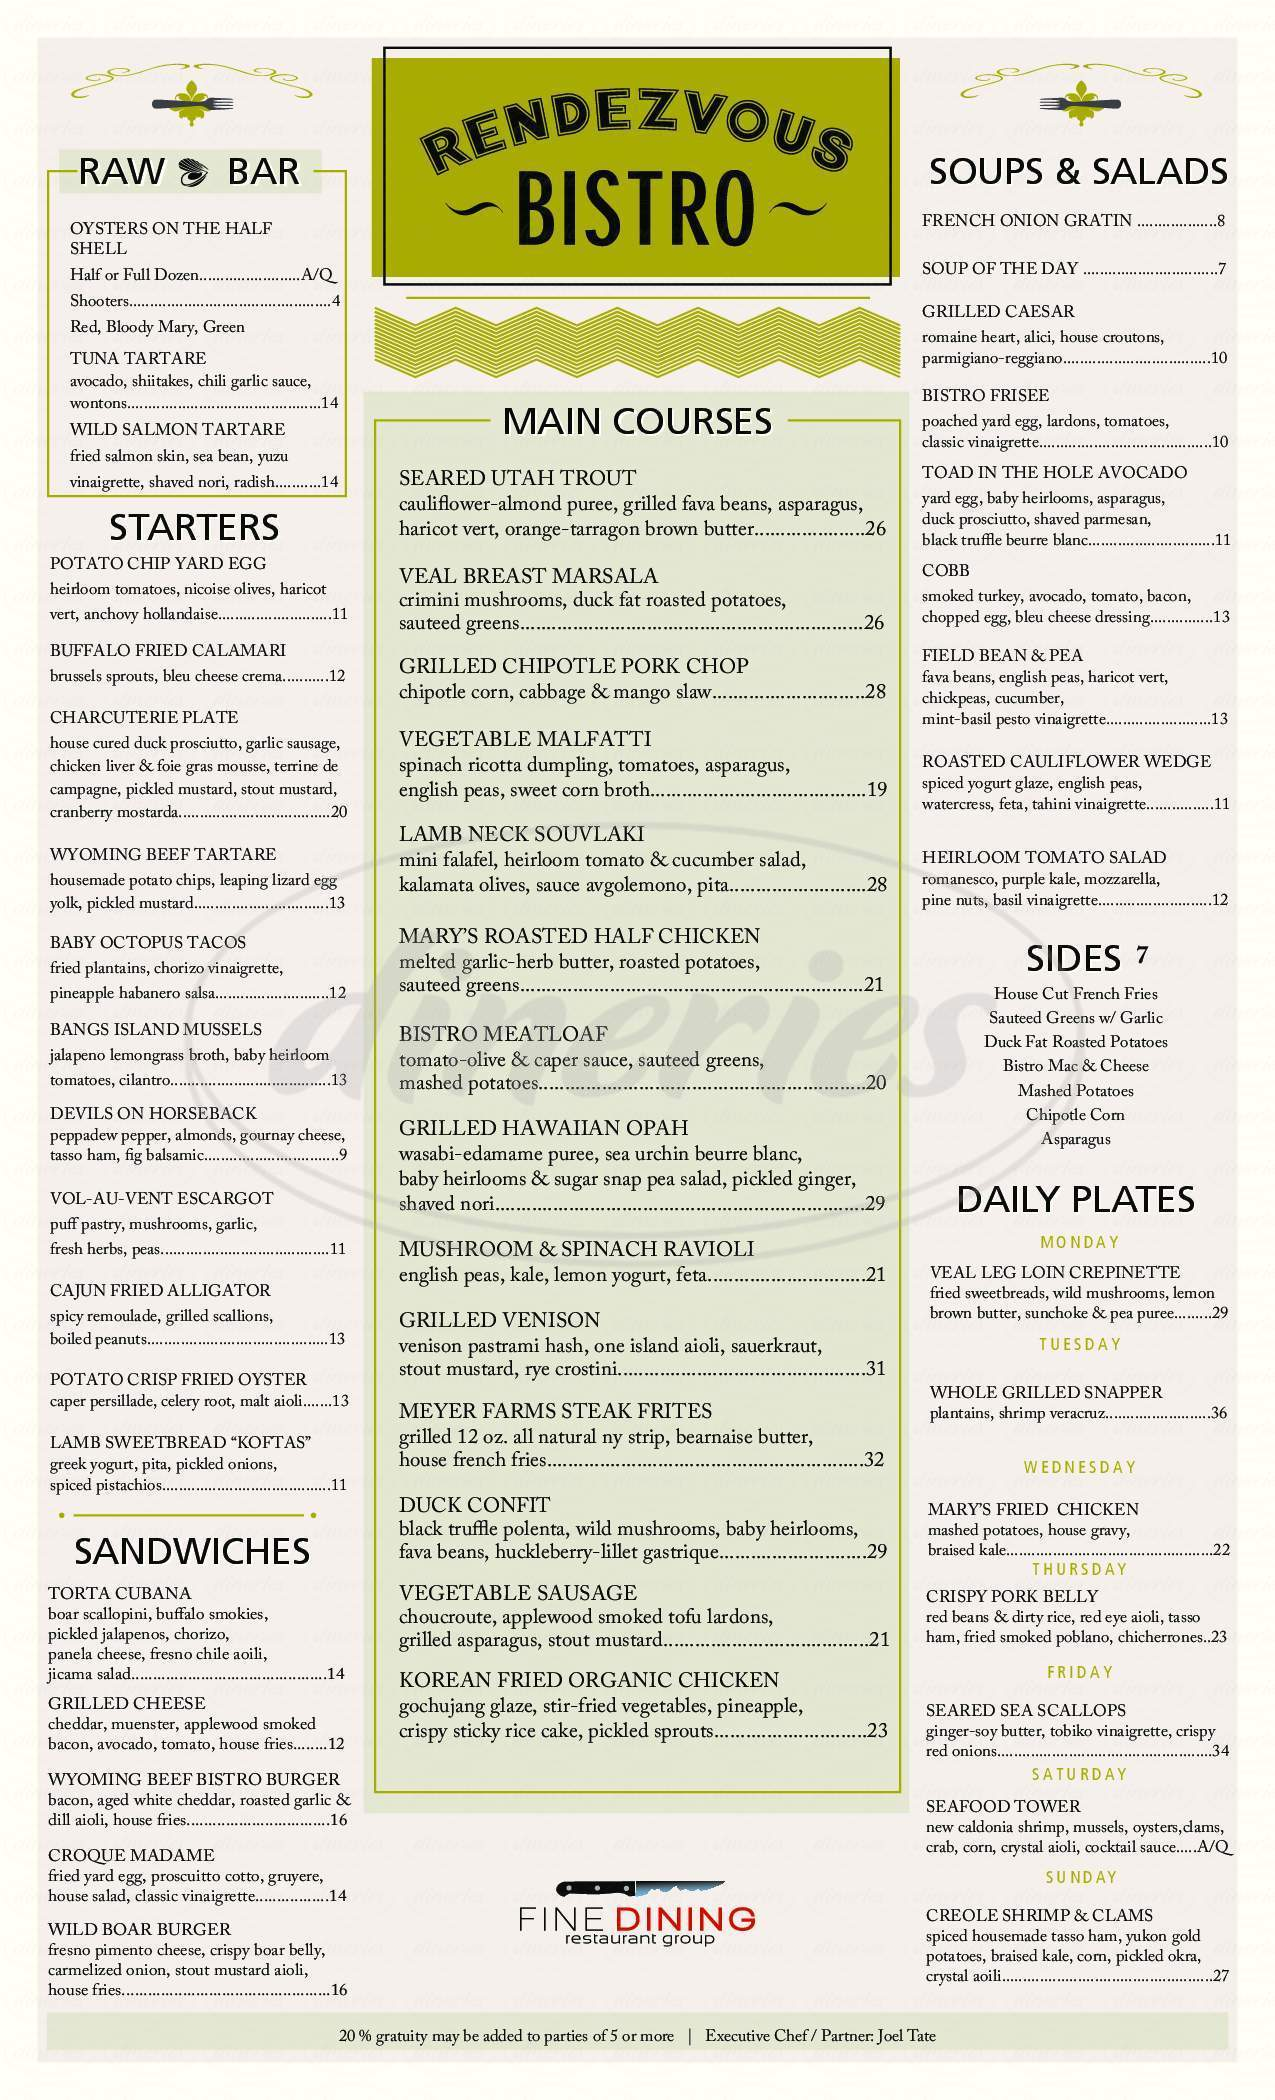 menu for Rendezvous Bistro